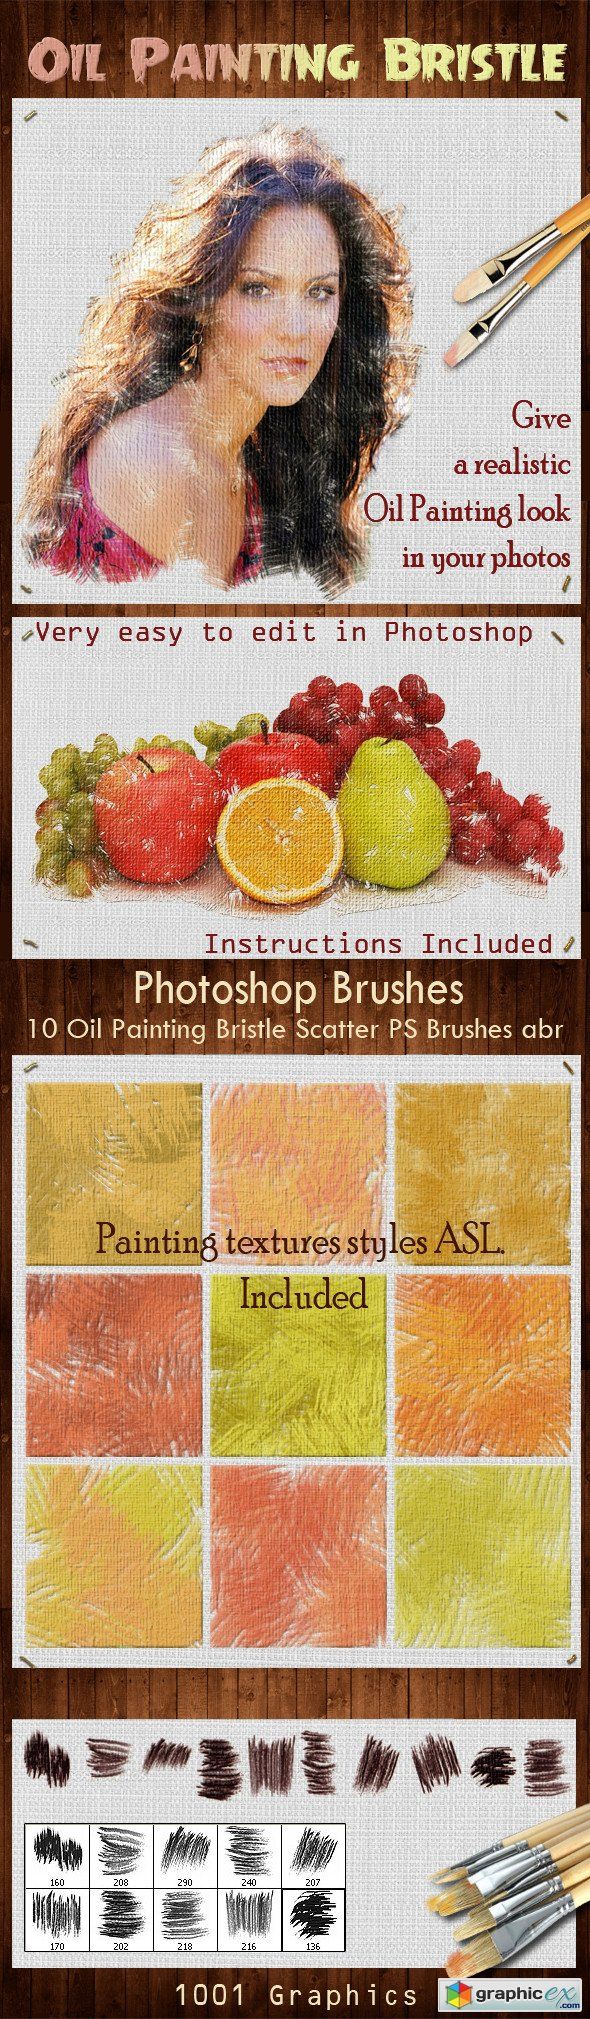 10 Oil Painting Bristle Scatter PS Brushes